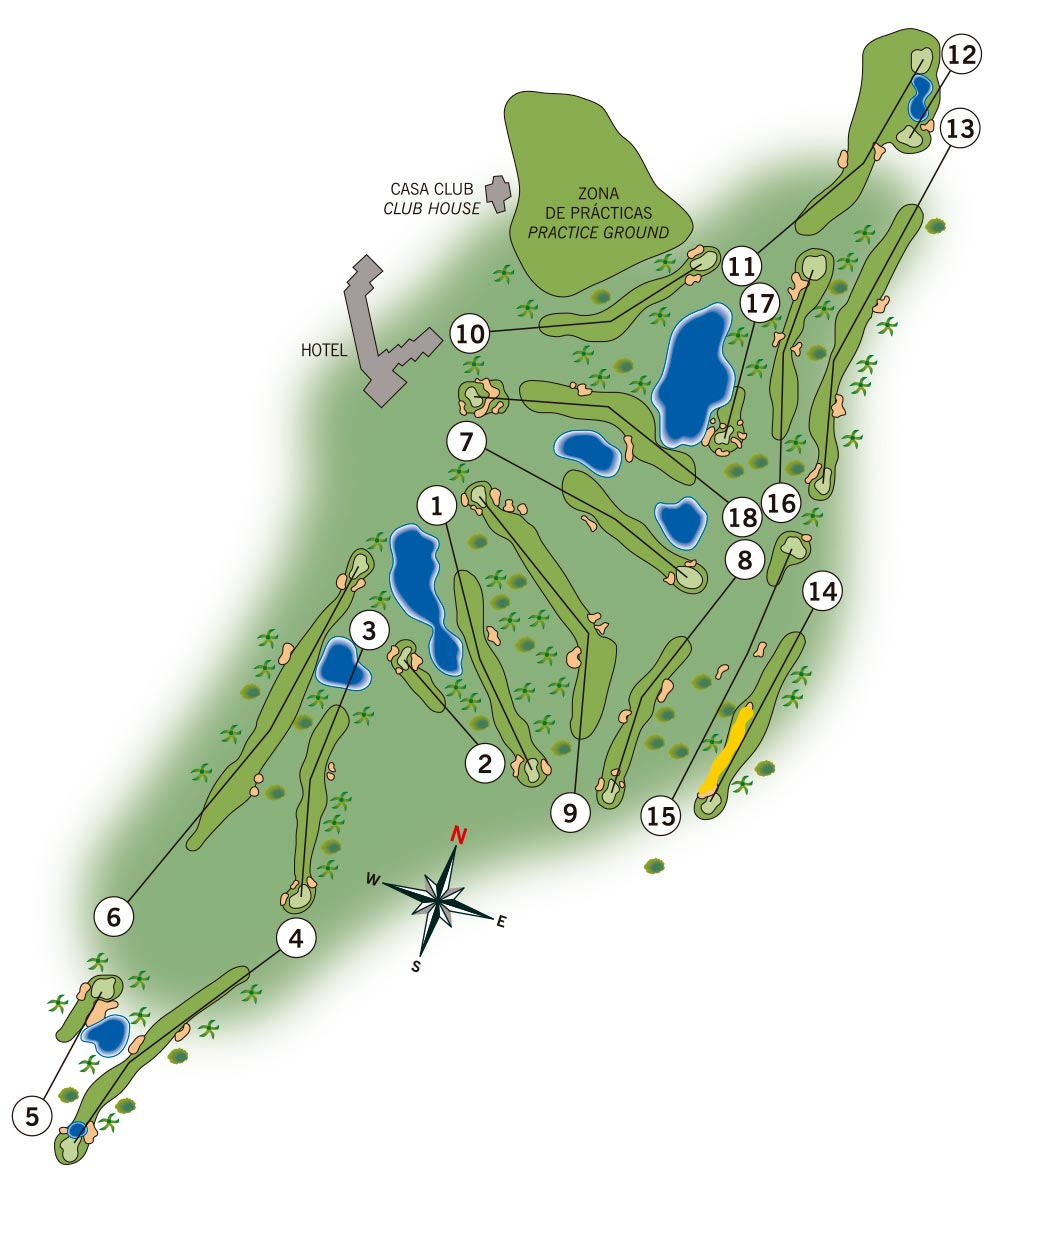 https://lamangaclub.com/sites/default/files/2019-10/South-Course.jpg